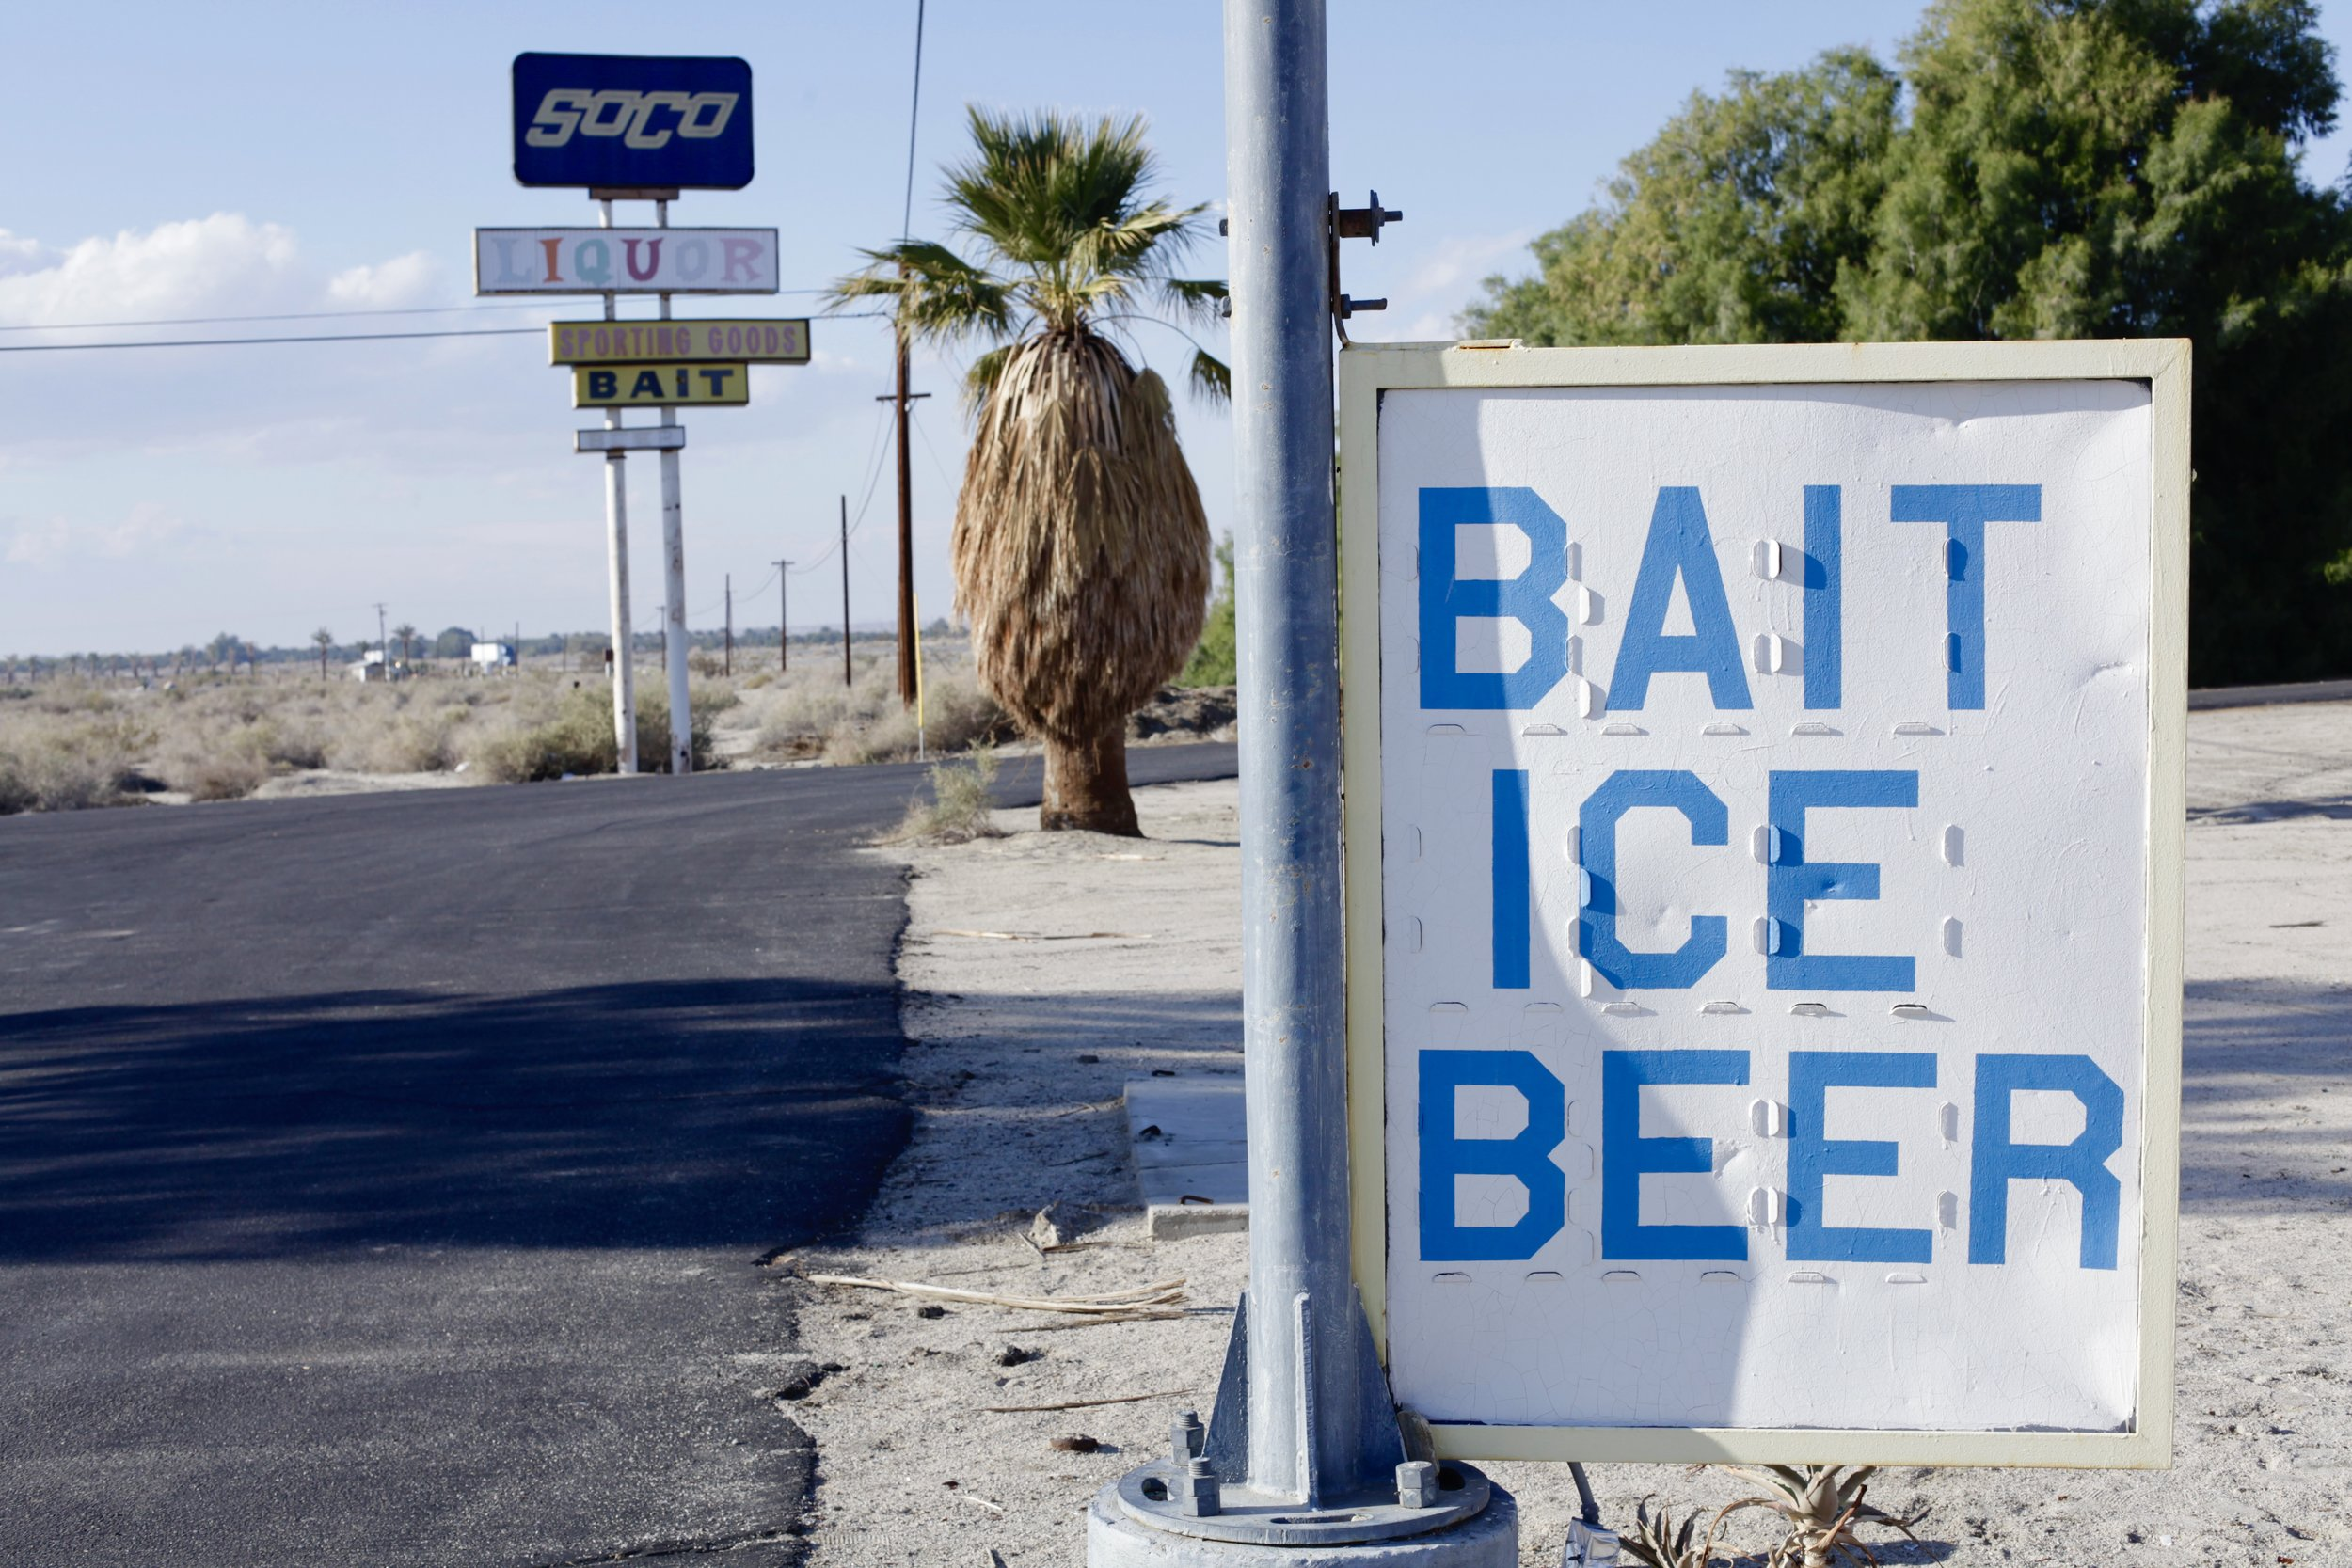 """One of the many """"Bait - Ice - Beer"""" advertisements found around Skip's Liquor and the International Banana Museum in North Shore, Calif. on Jan. 5, 2017. (Photo by Ethan Jakob Craft.)"""